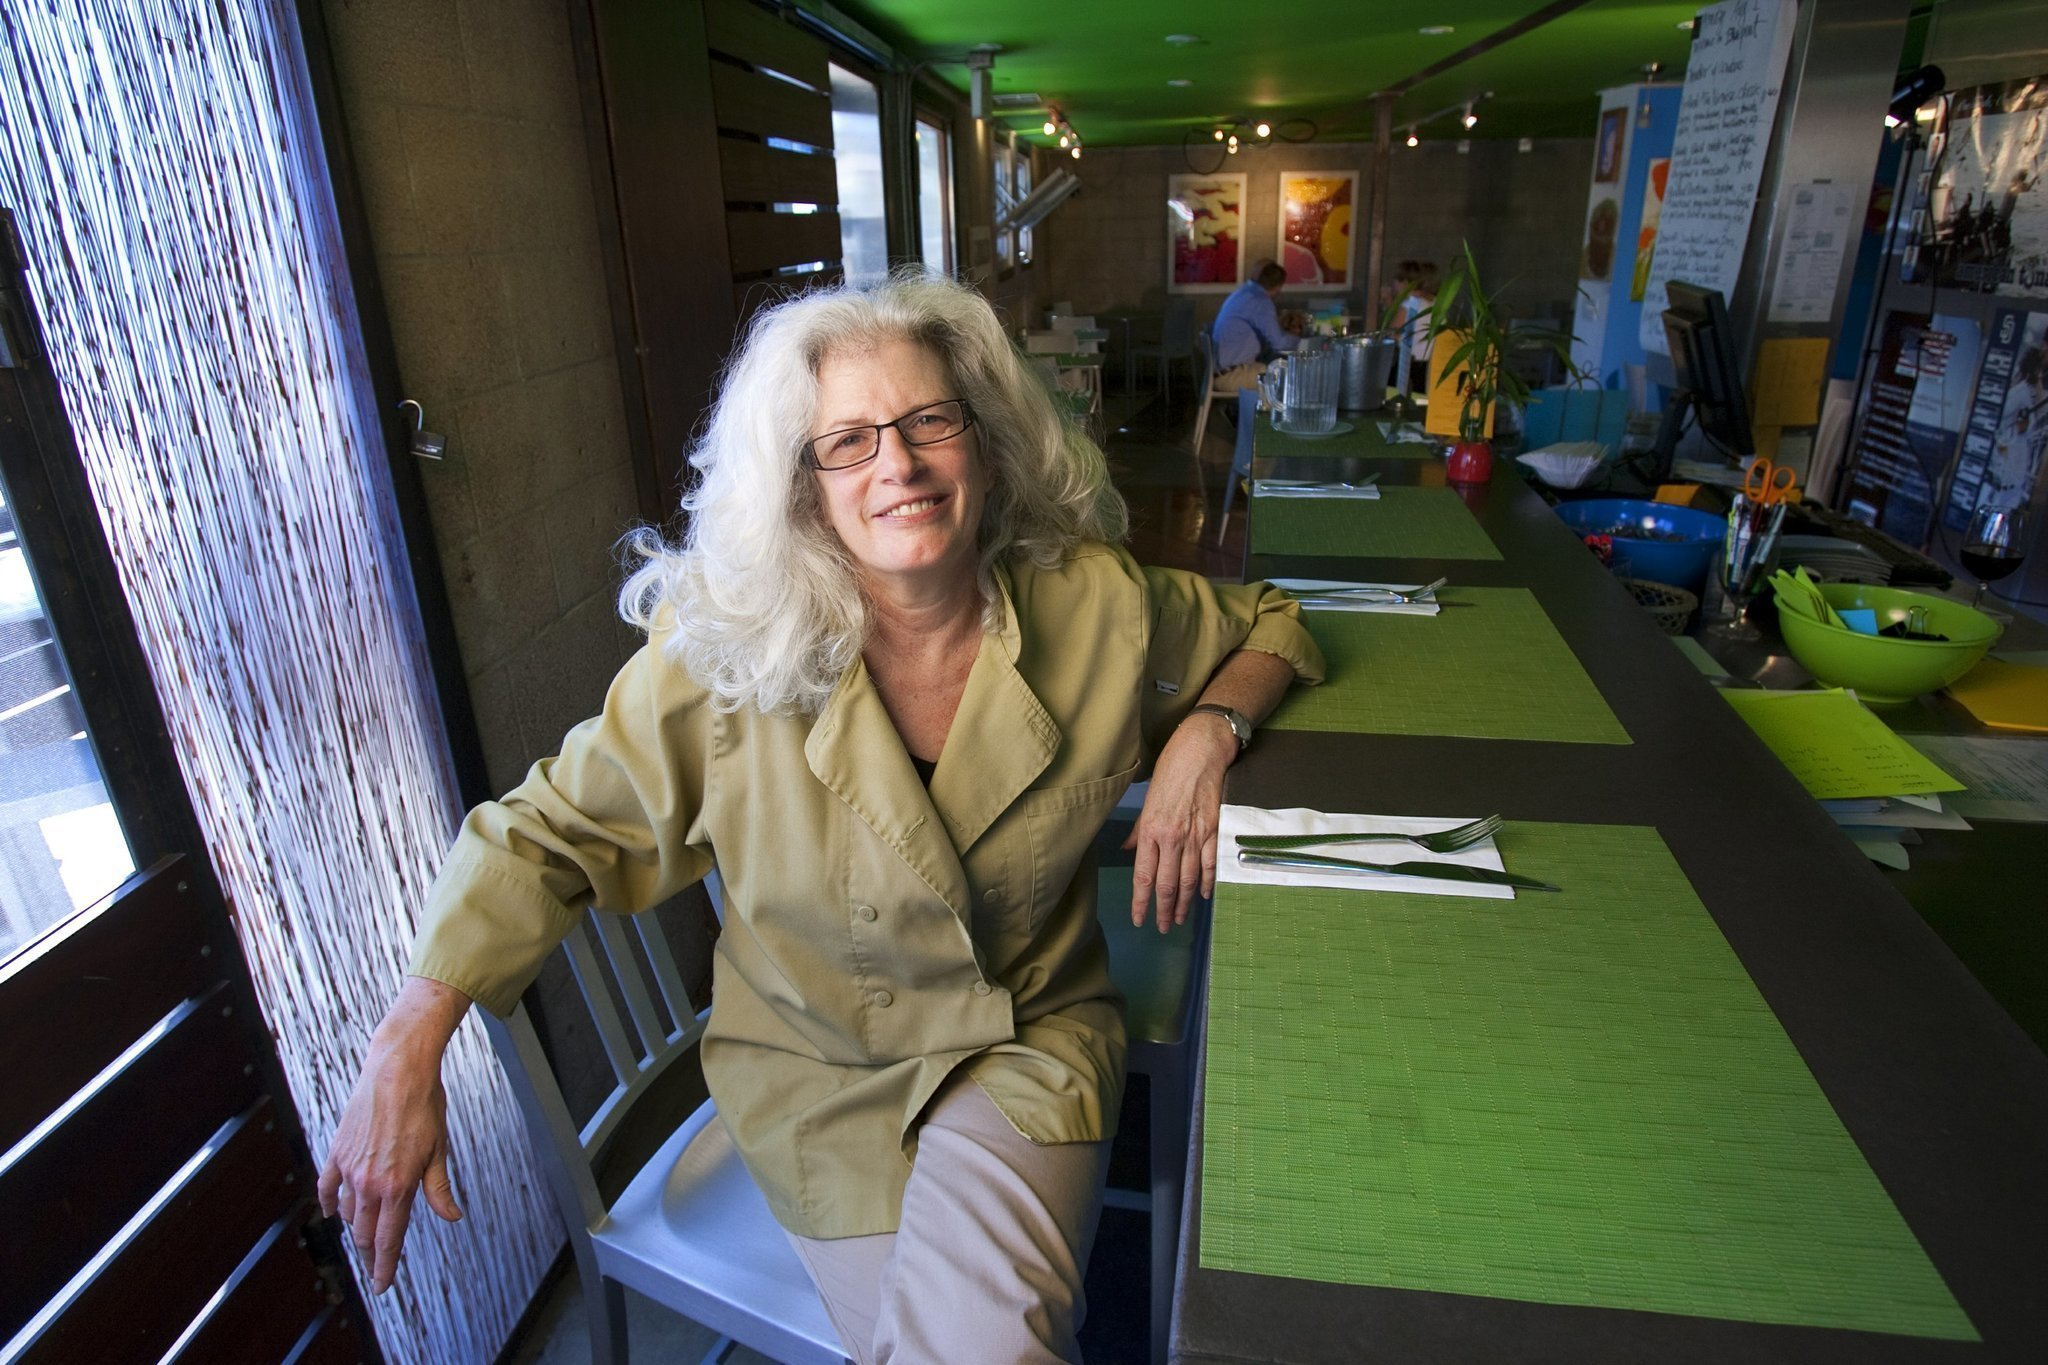 Gayle covner is eclectic fits right into barrio logan the san gayle covner is eclectic fits right into barrio logan the san diego union tribune malvernweather Choice Image